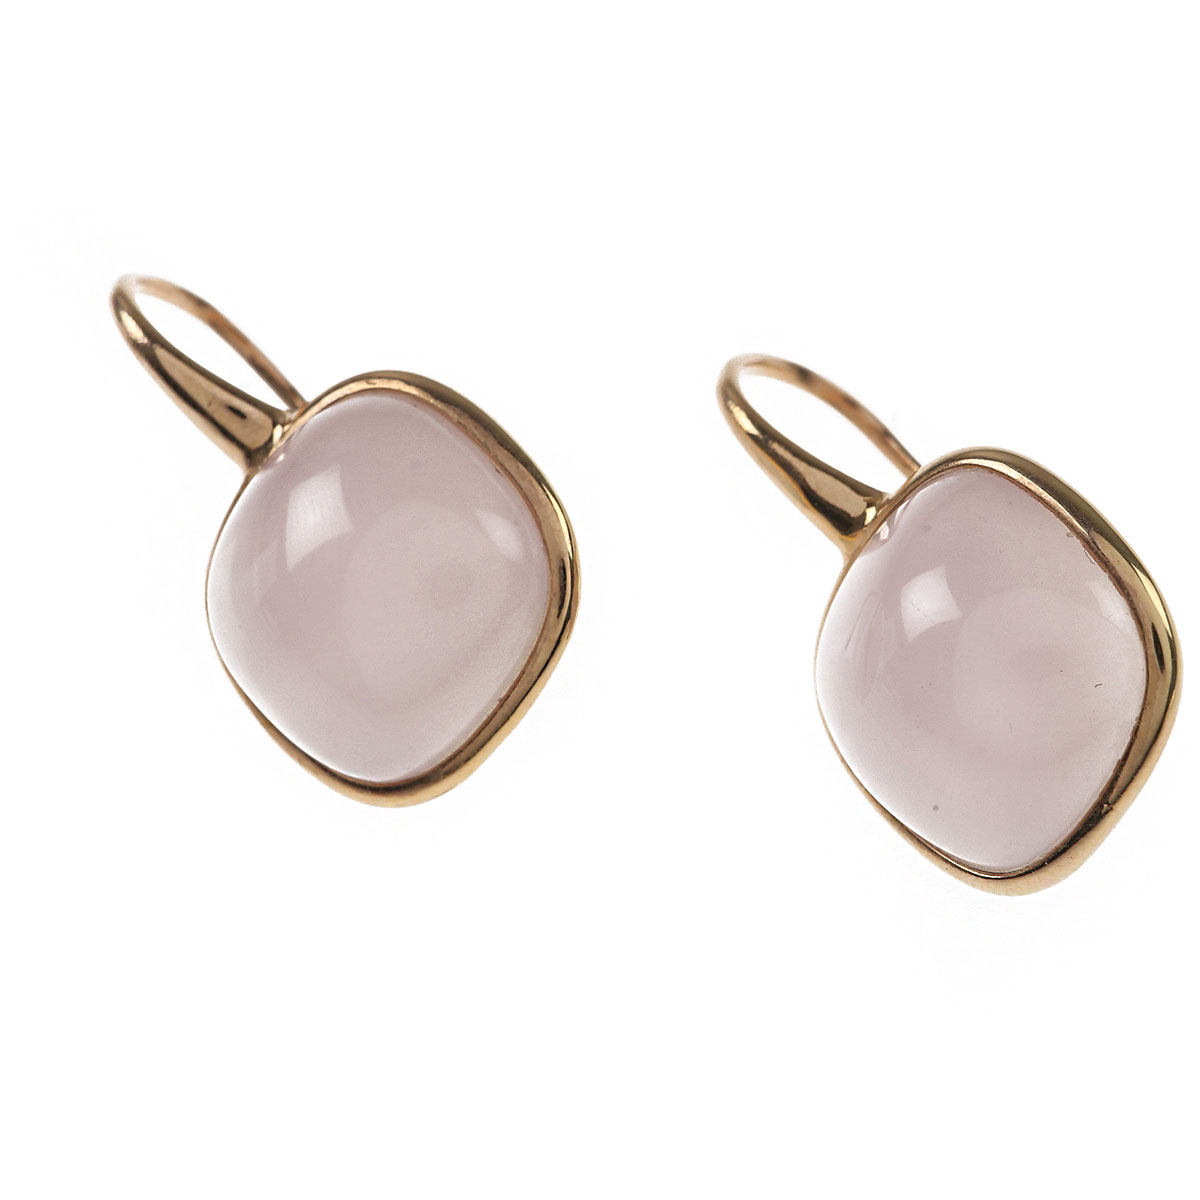 Image of Italian Finest Jewelry Earrings for Women, Pink, 18 Kt Yellow Gold, 2017